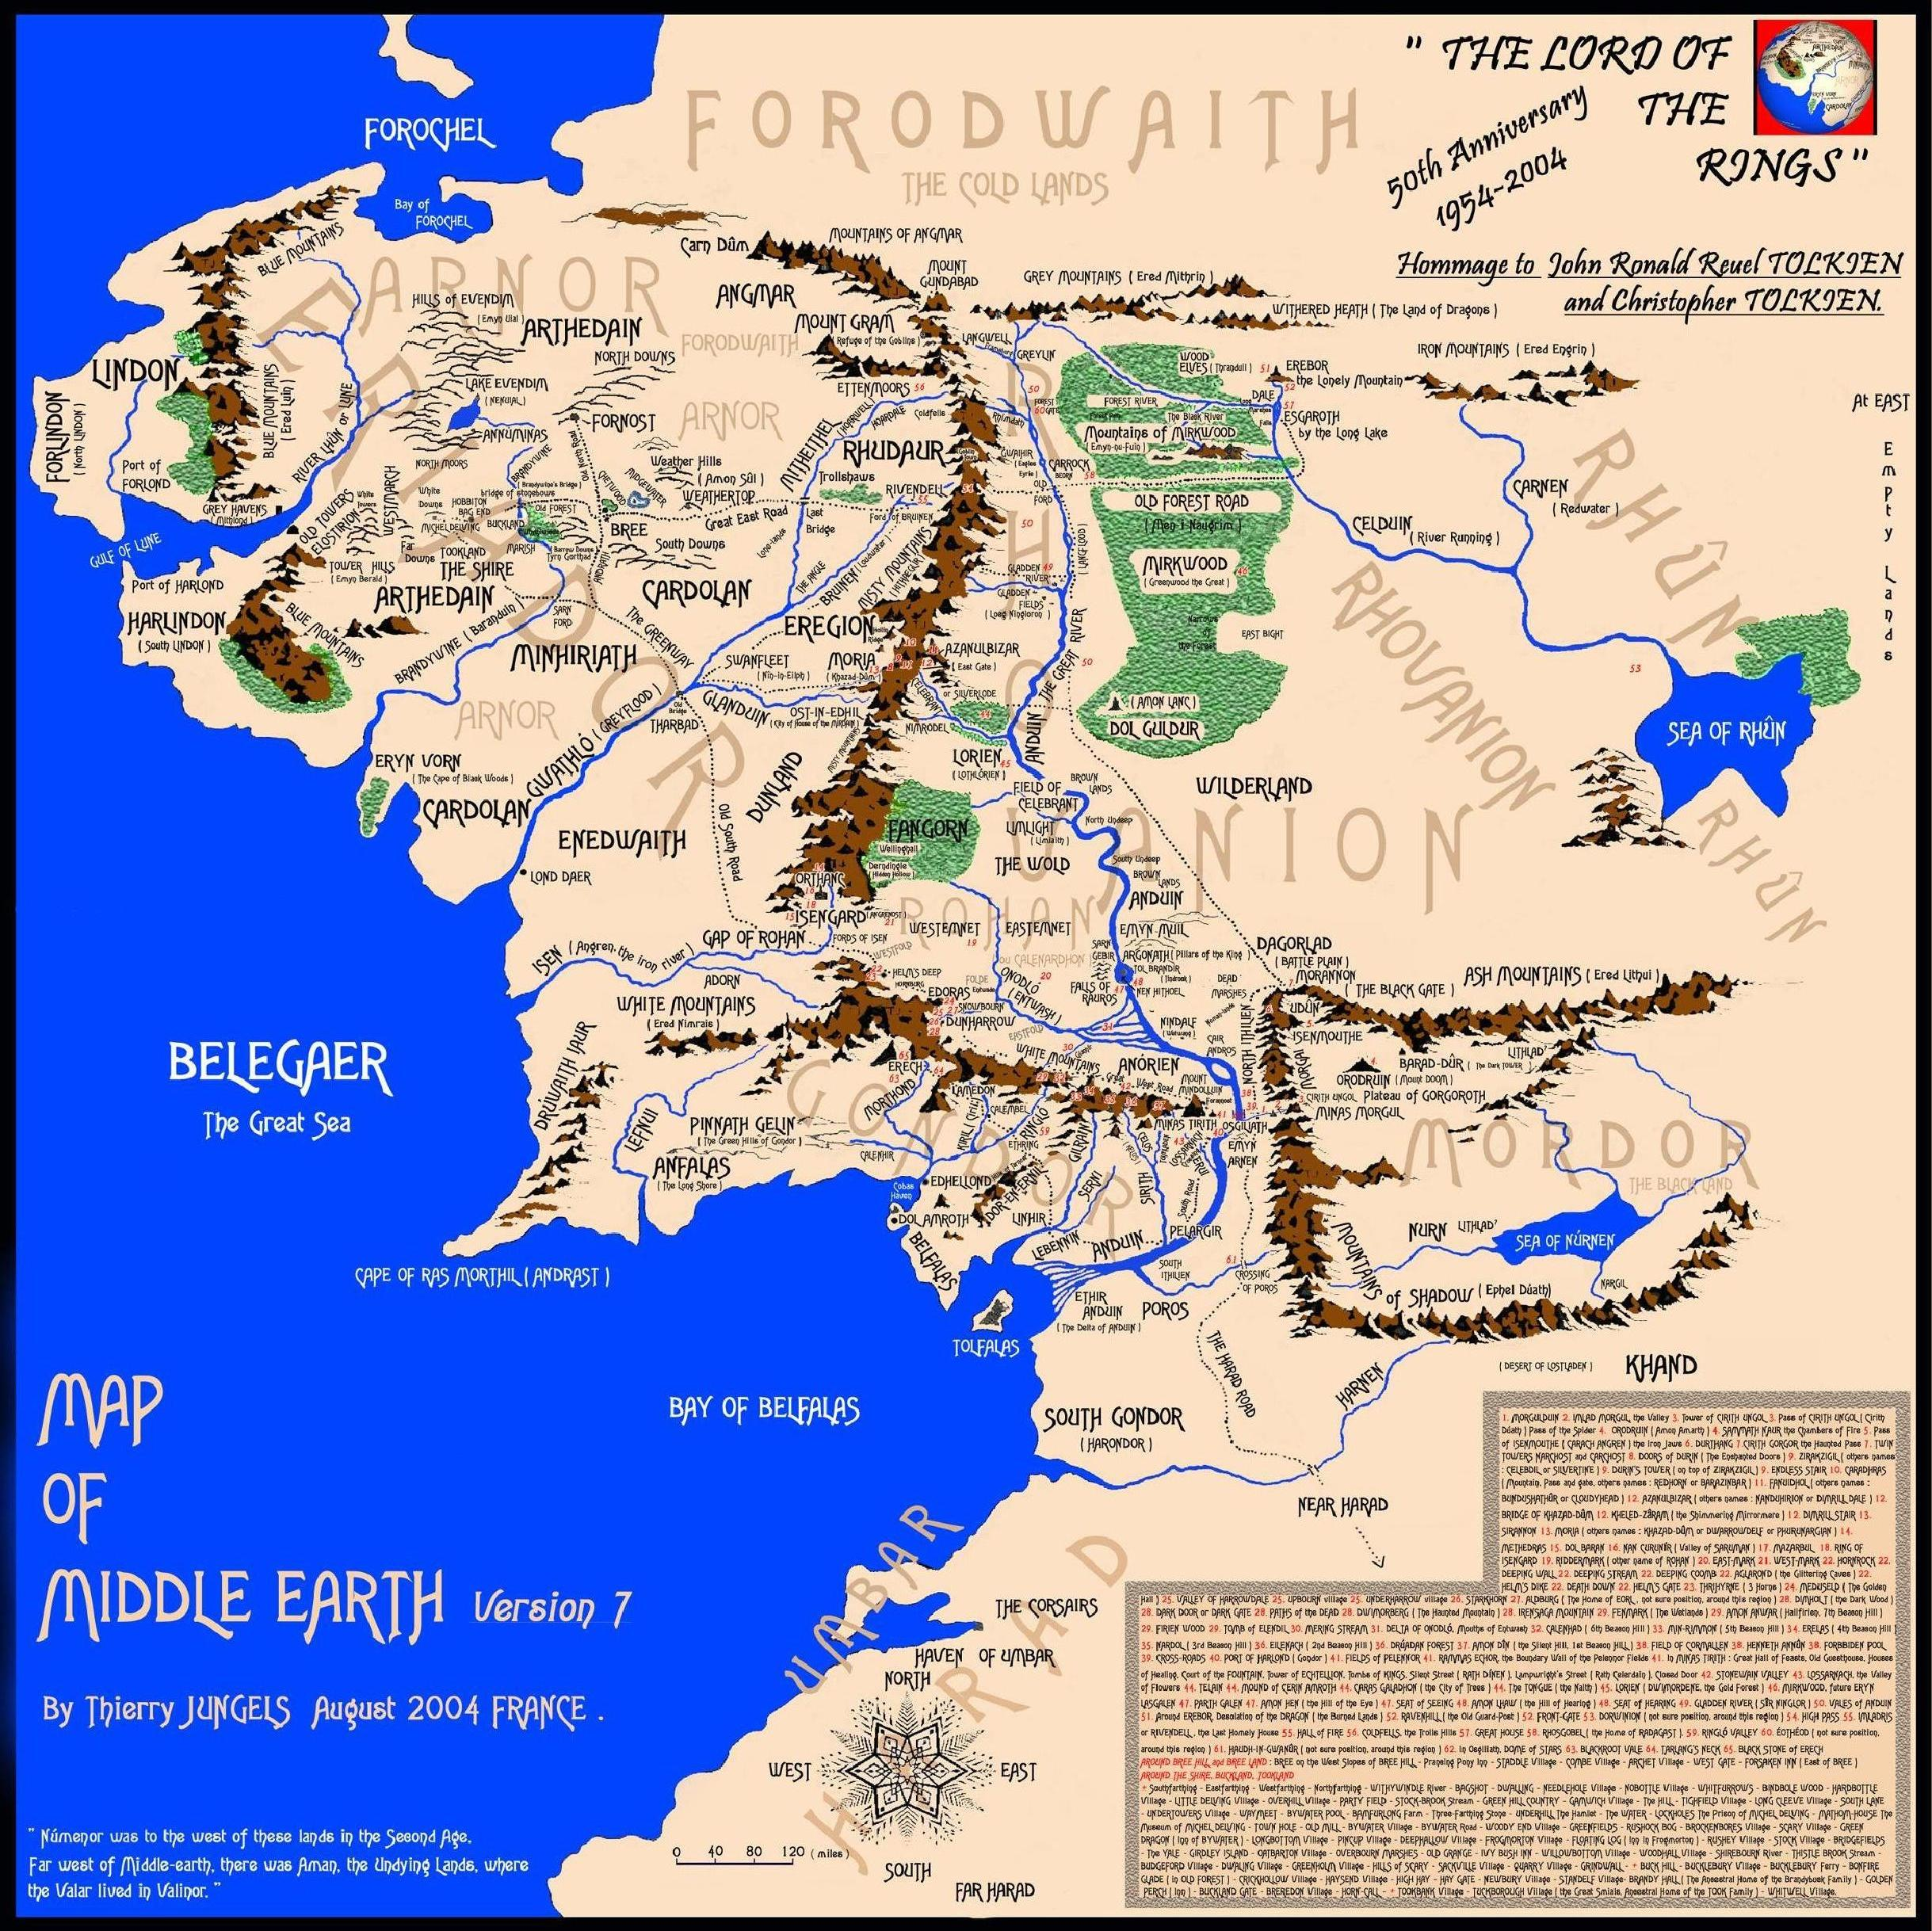 The History of Middleearth The One Wiki to Rule Them All FANDOM